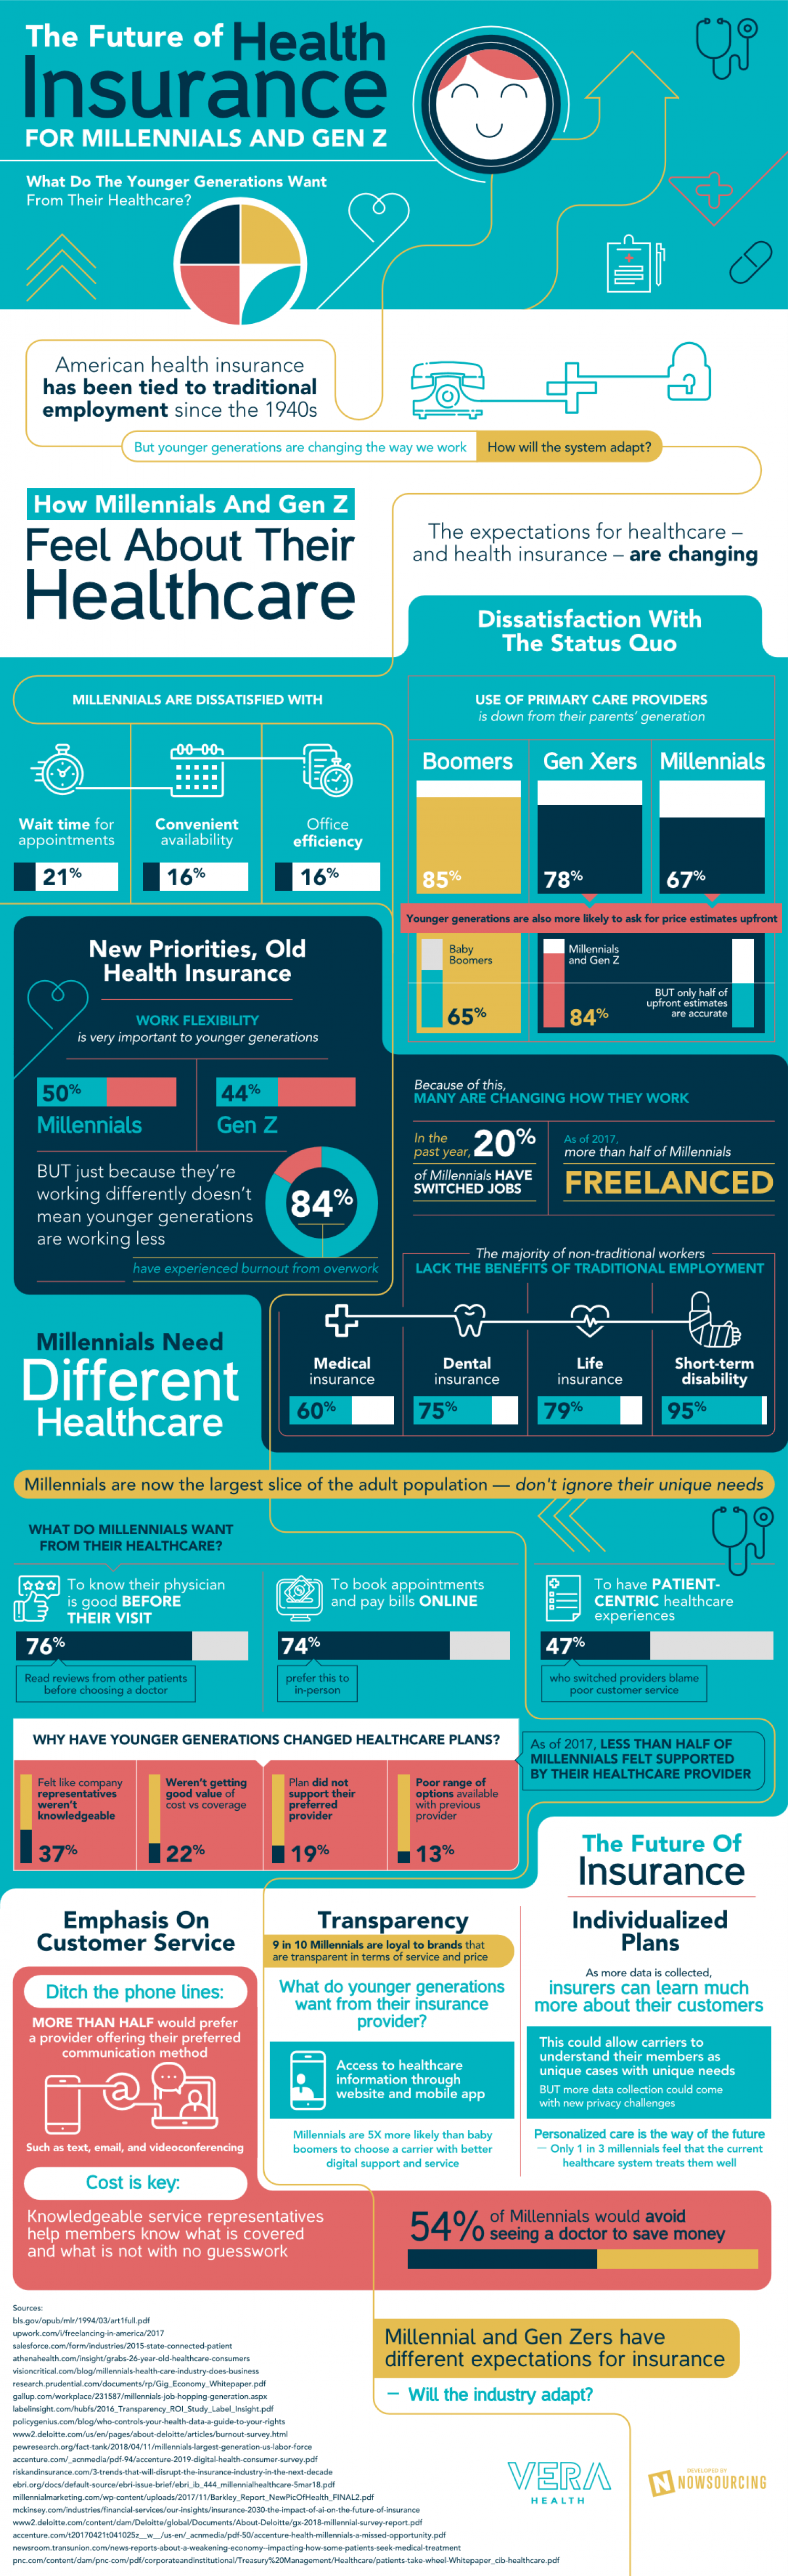 The Future of Health Insurance for Millennials and Gen Z Infographic